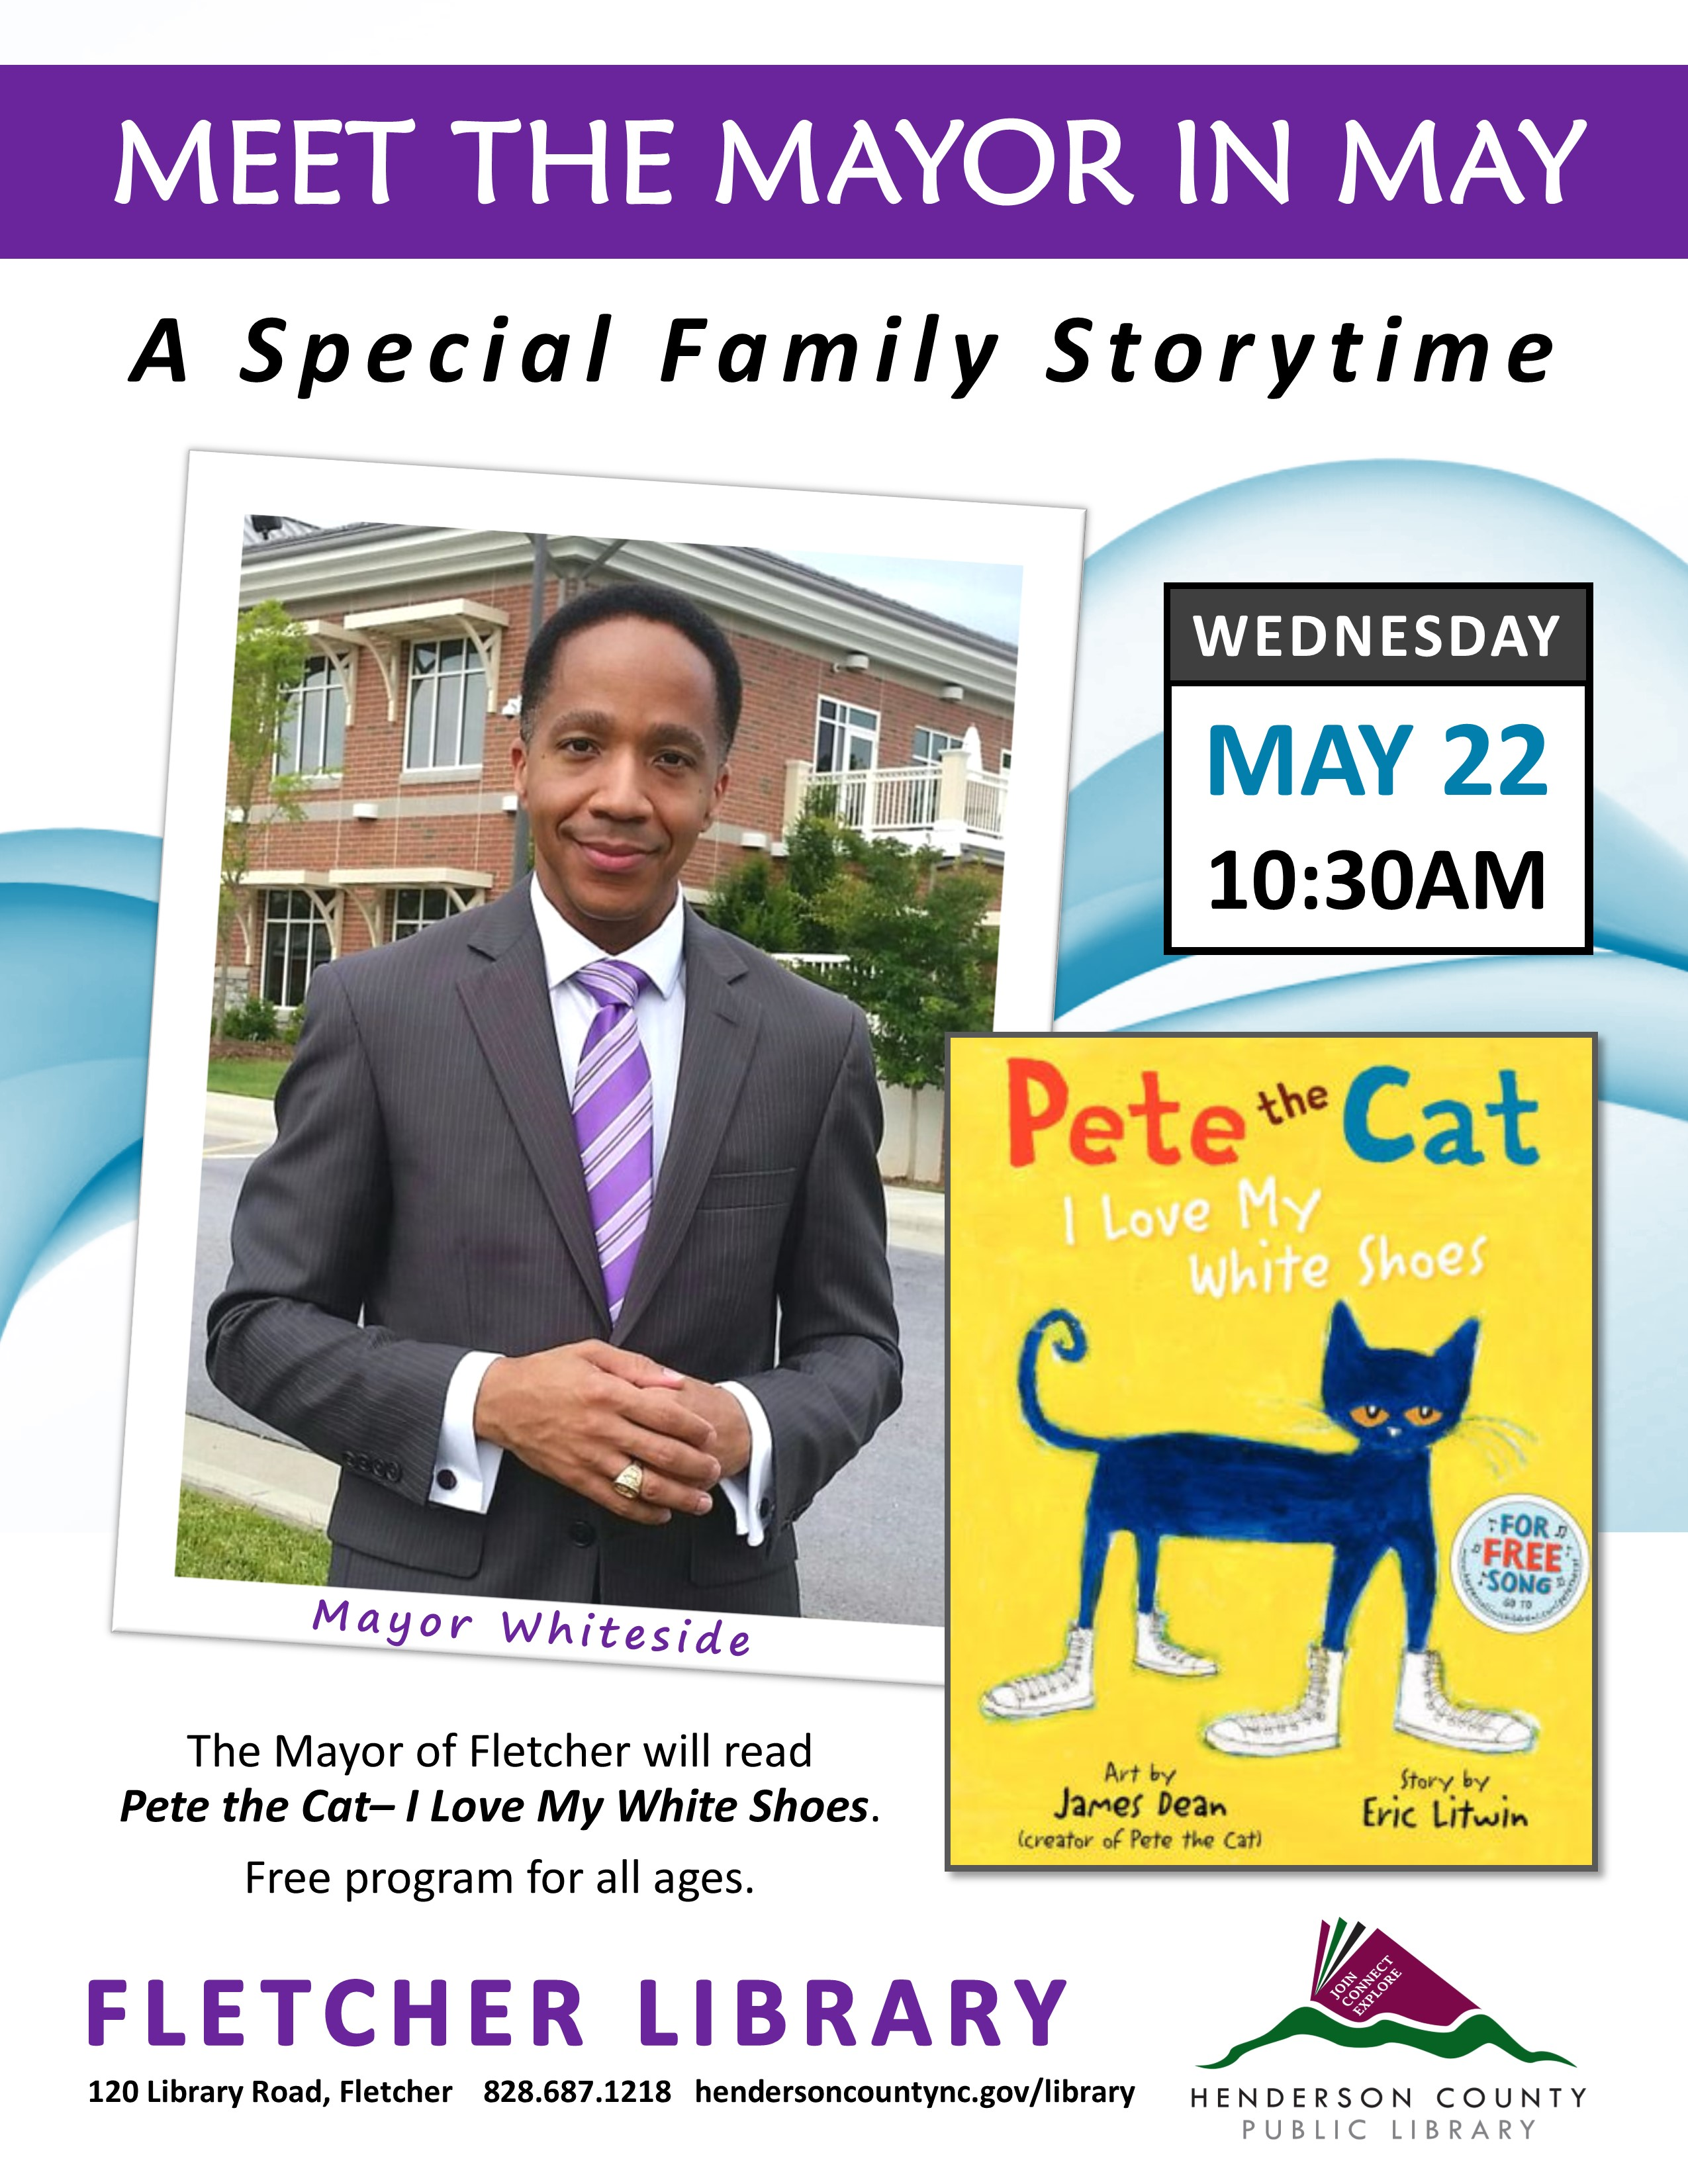 Fletcher Family Storytime- Meet the Mayor in May